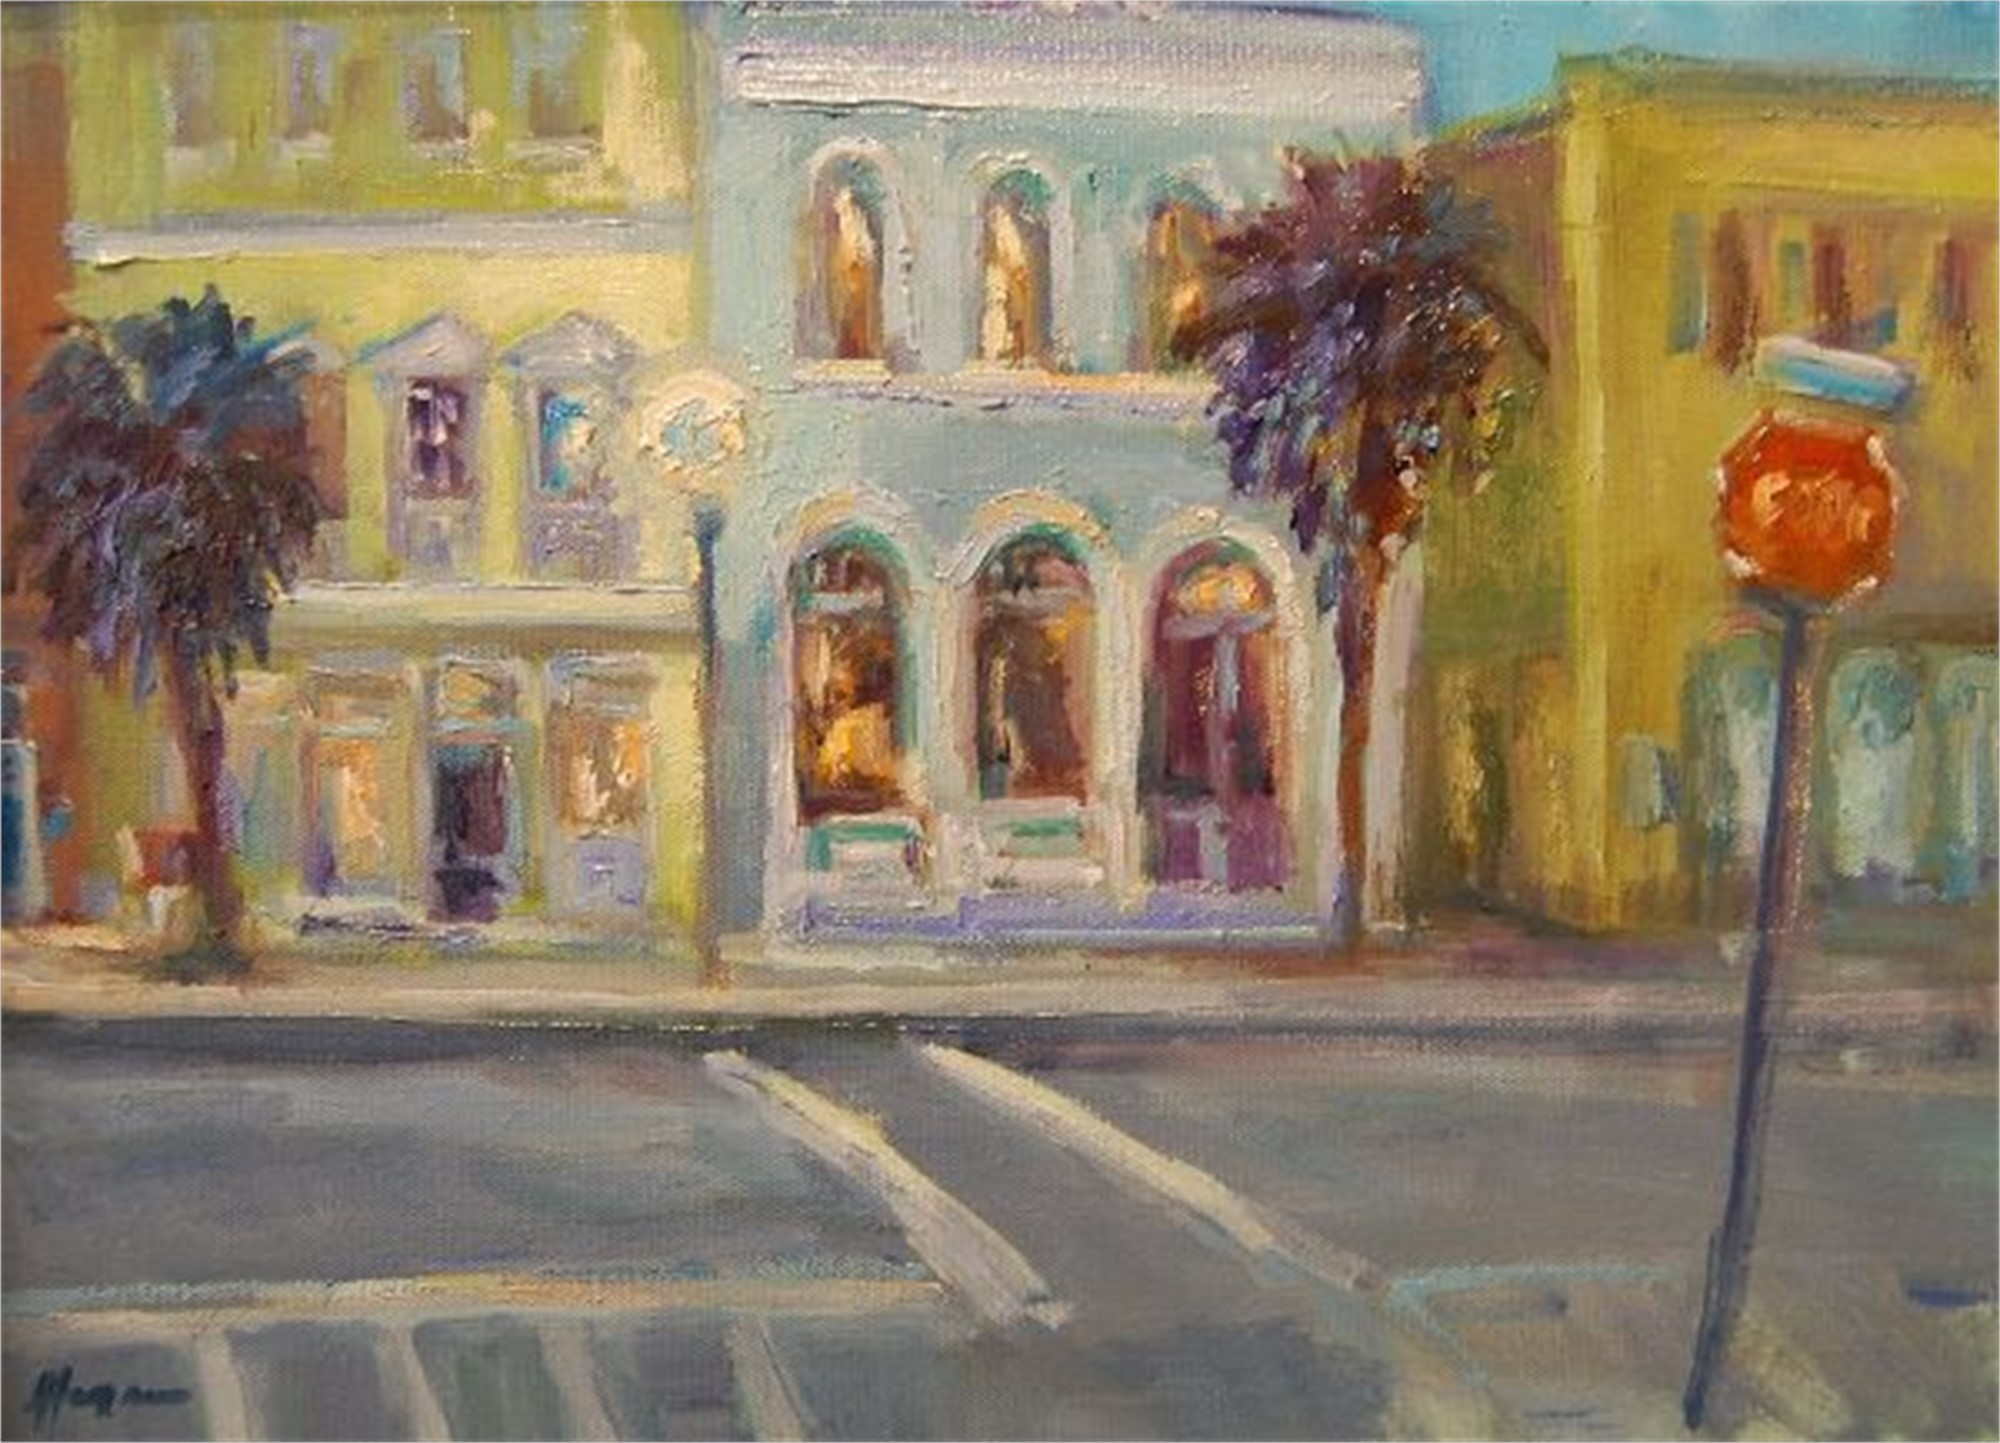 Lights on Broad by Karen Hewitt Hagan